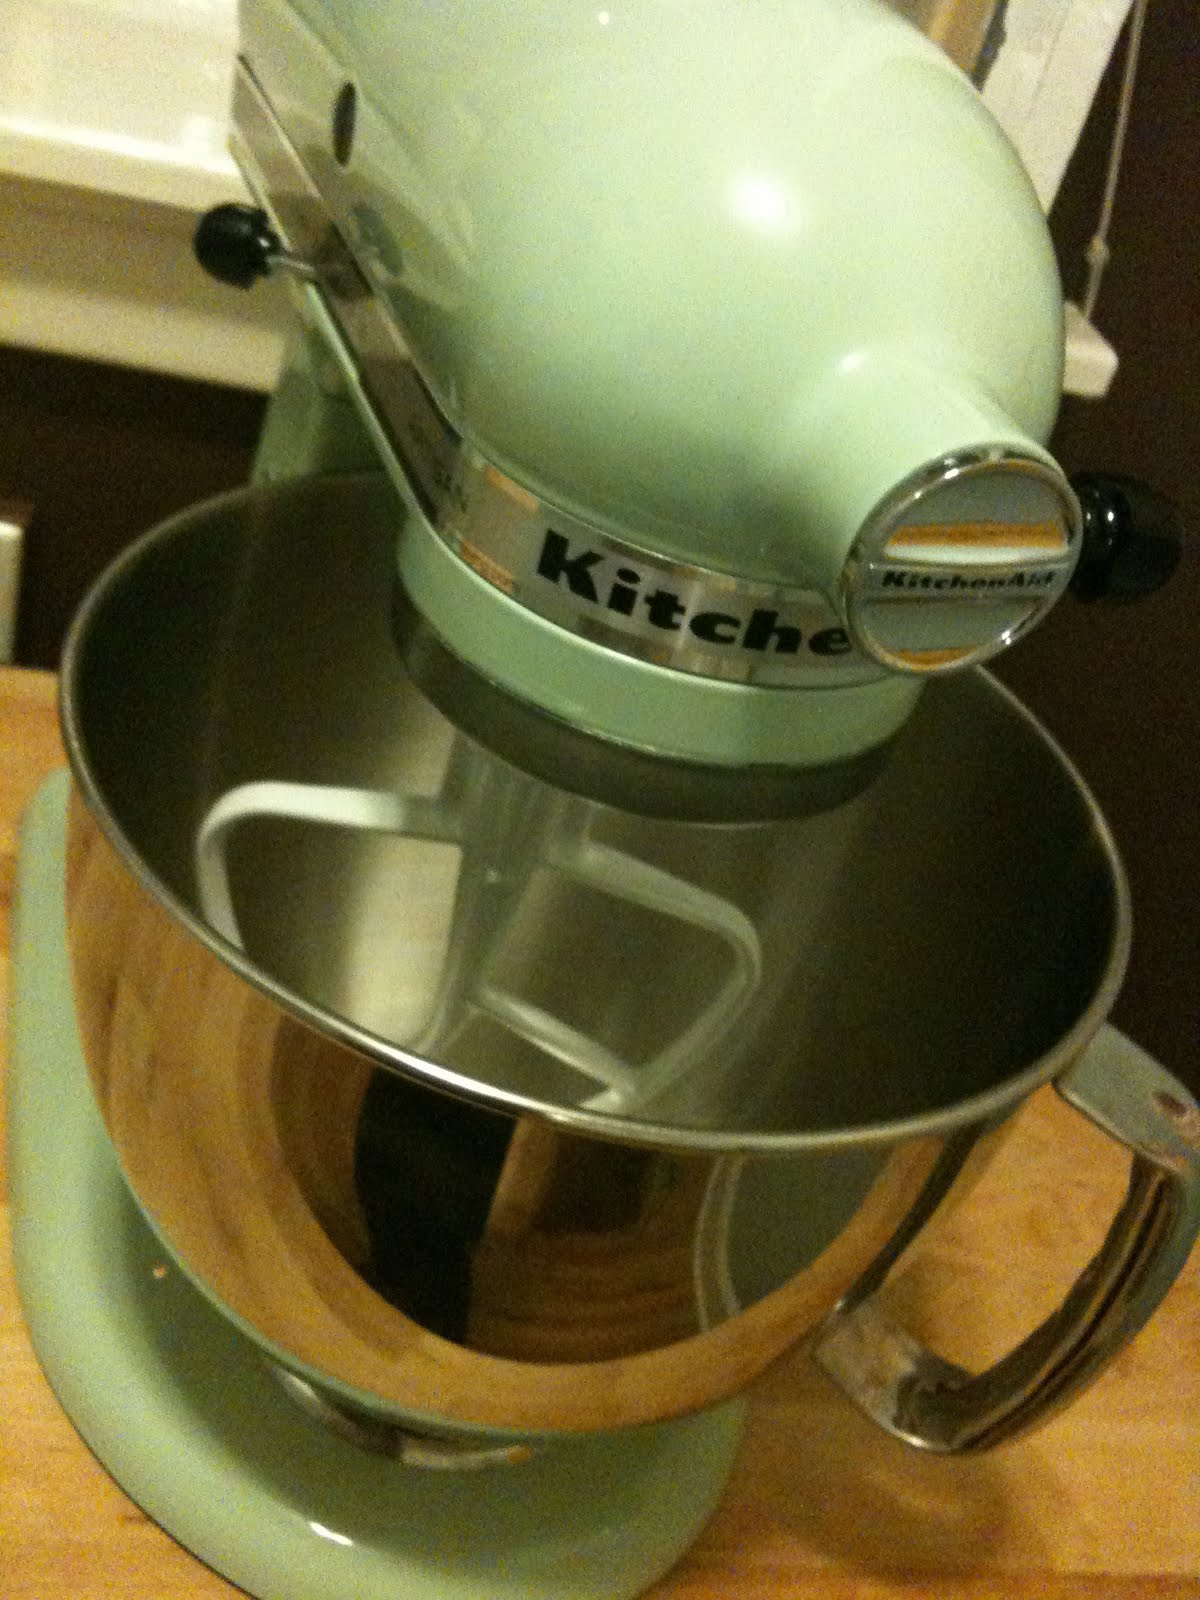 kitchen aid 5 qt mixer sink without cabinet the kitchenaid quart artisan stand all details you didn t december 8 2011